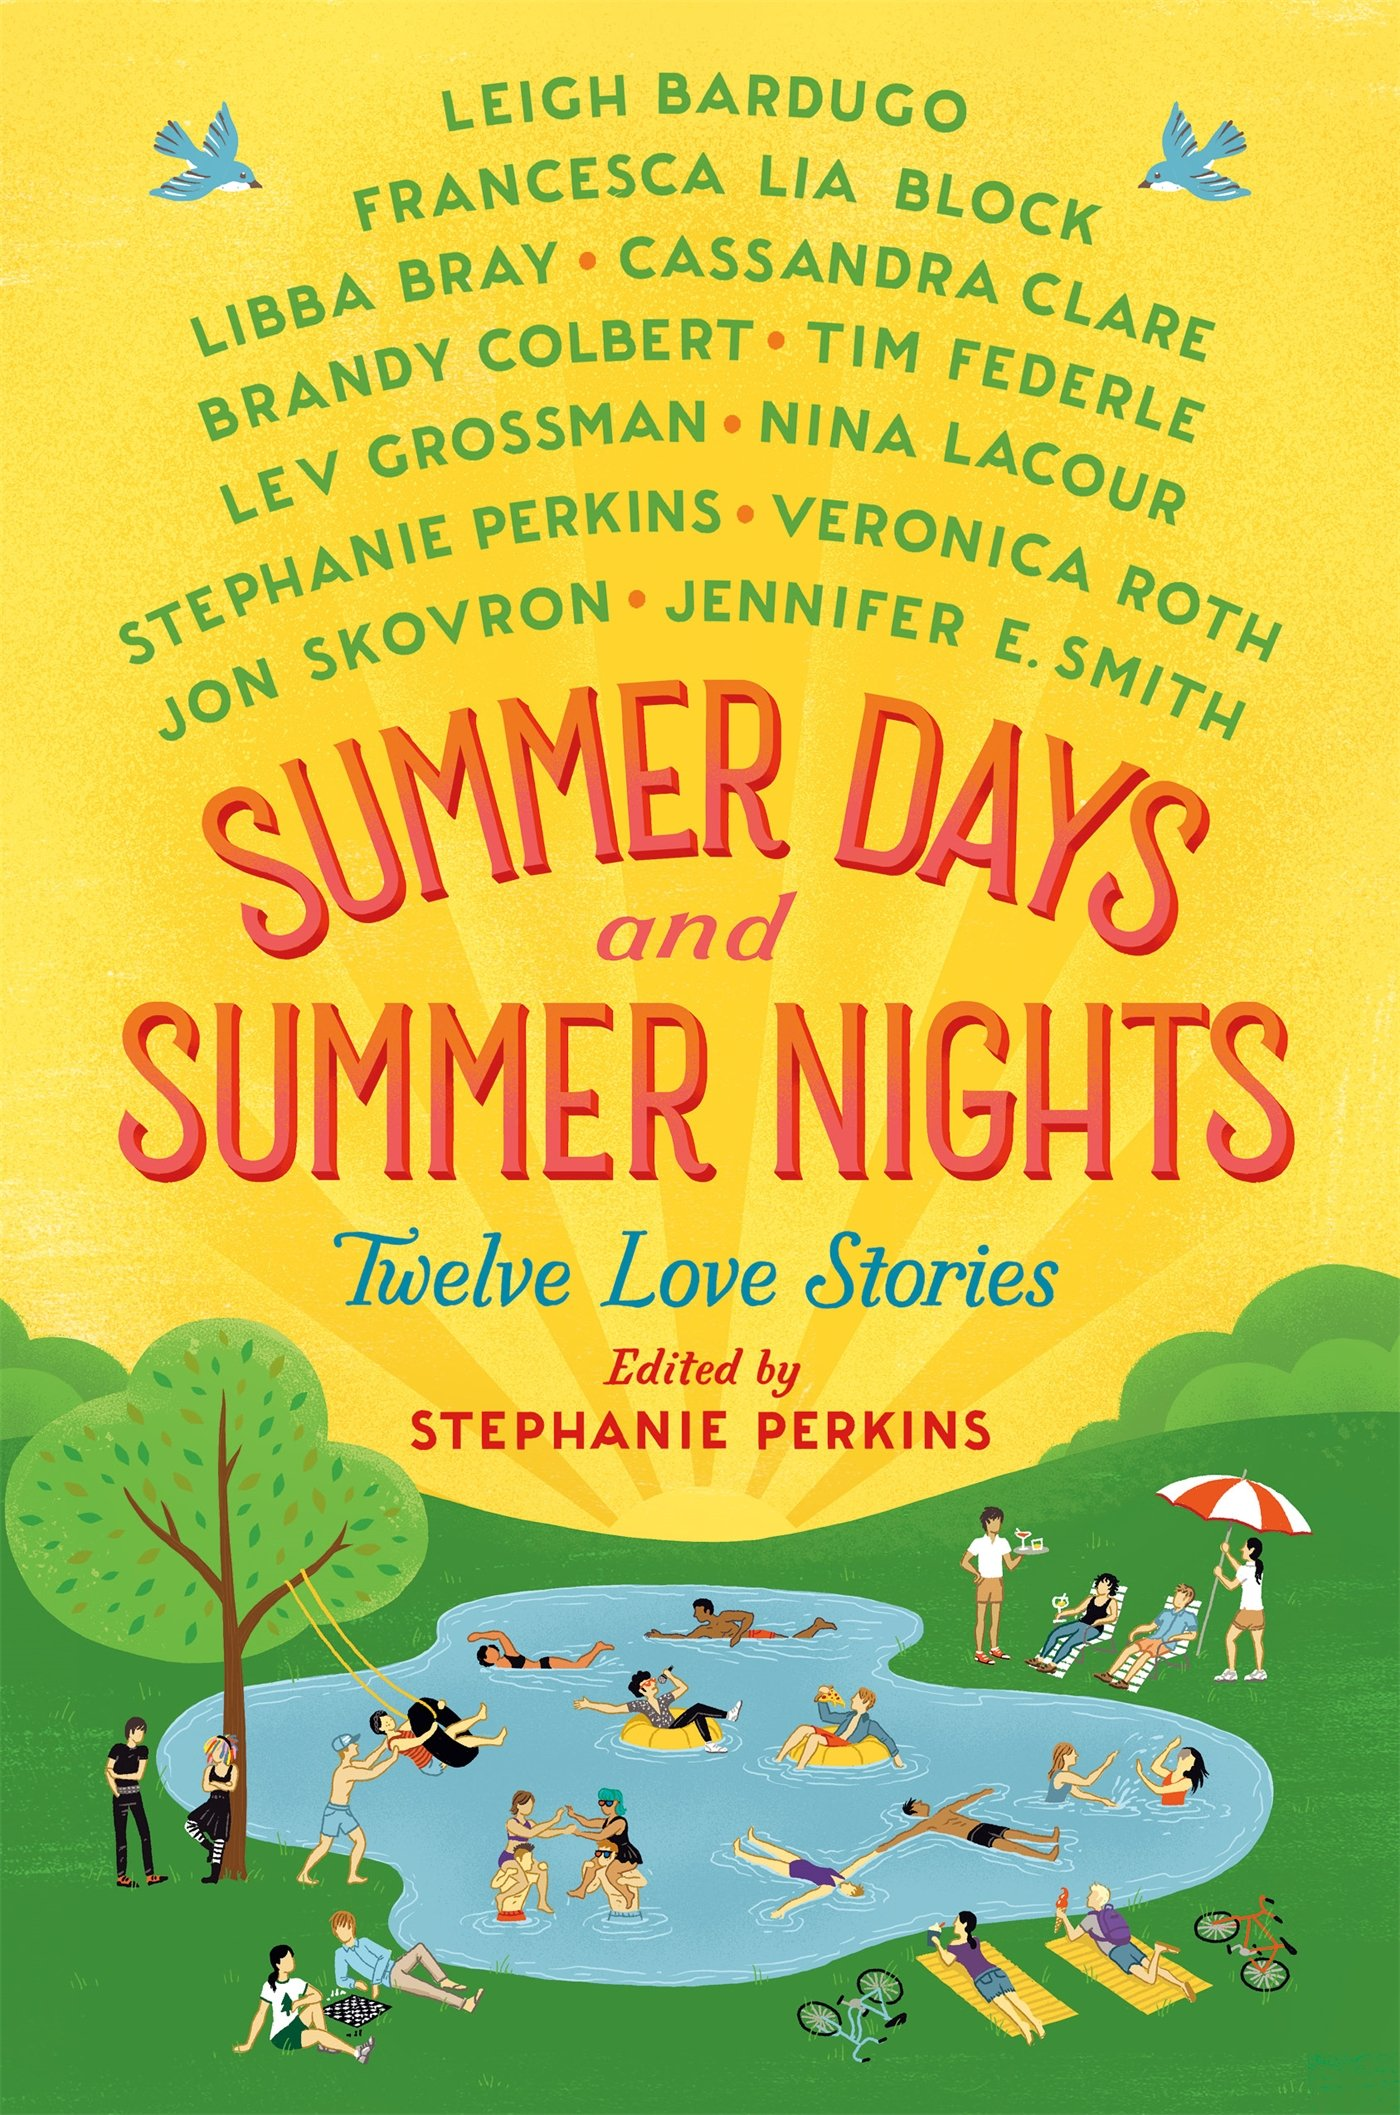 Image result for summer days and summer nights stephanie perkins